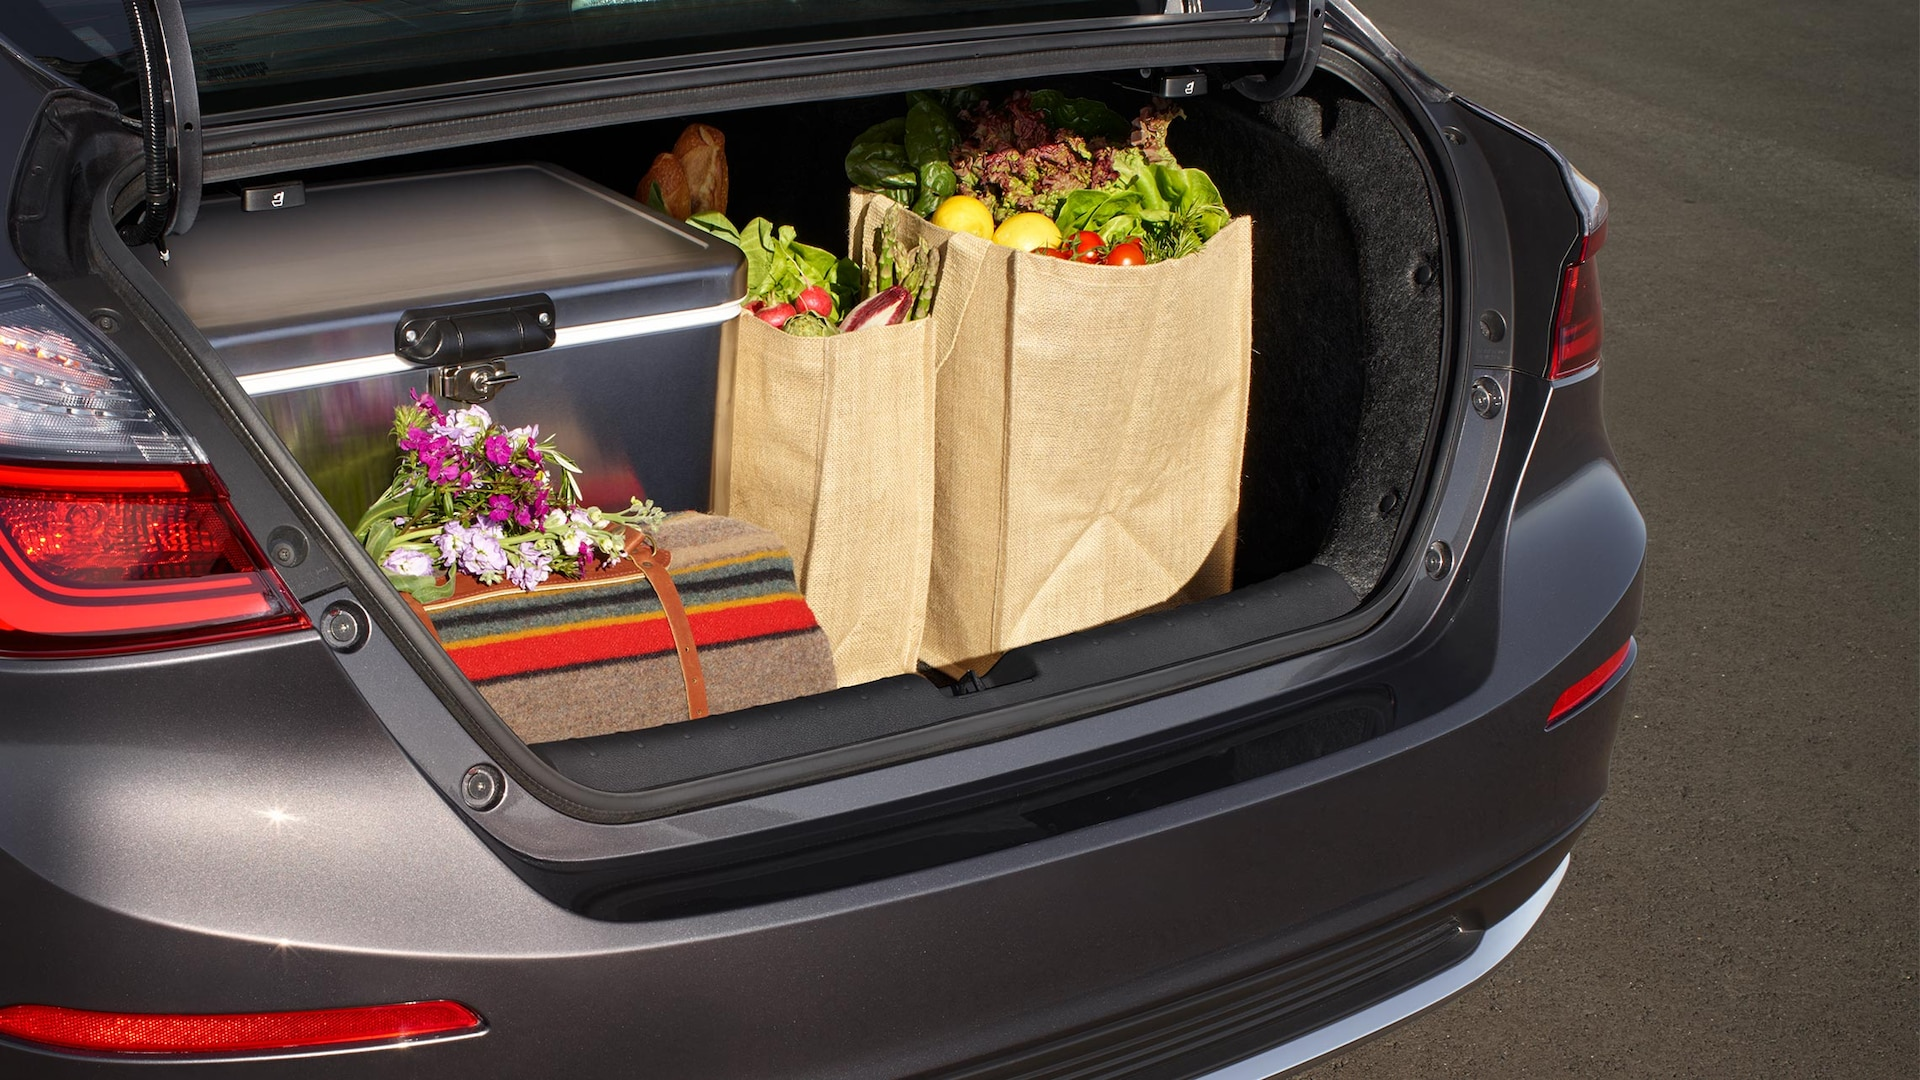 Trunk/storage space detail on 2020 Honda Insight in Modern Steel Metallic.